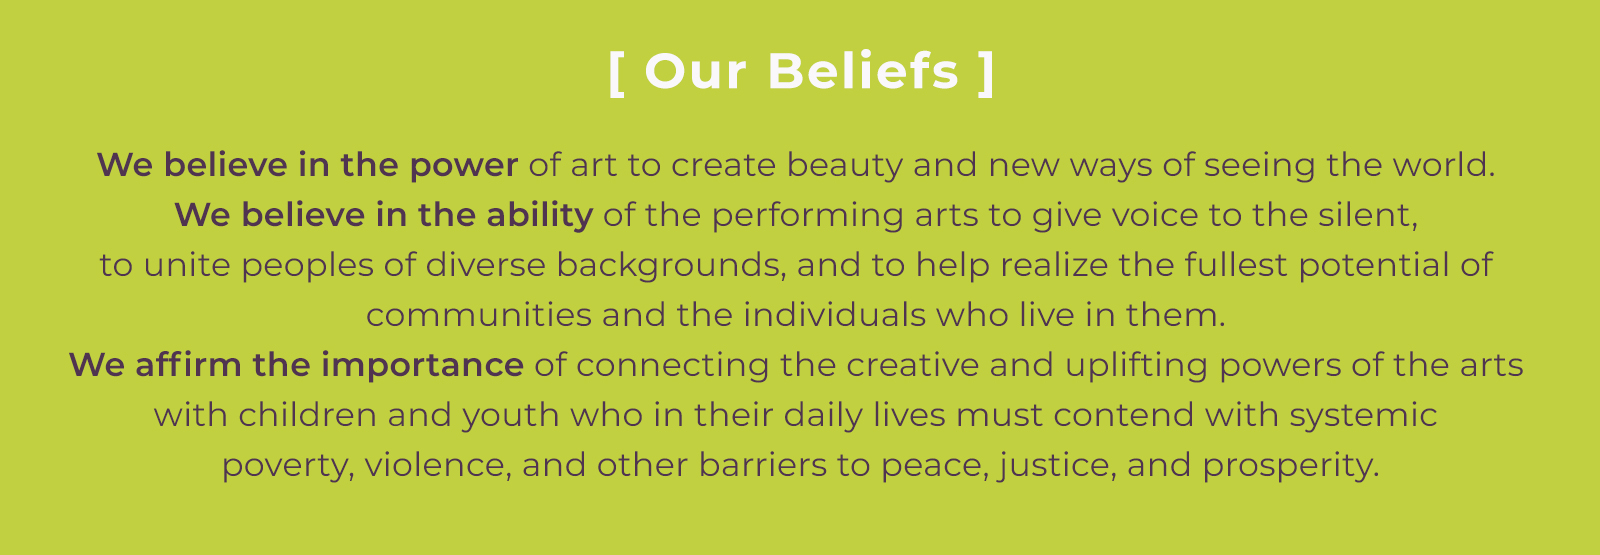 Our Beliefs: We believe in the power of art to create beauty and new ways of seeing the world. We believe in the ability of the performing arts to give voice to the silent, to unite peoples of diverse backgrounds, and to help realize the fullest potential of communities and the individuals who live in them. We affirm the importance of connecting the creative and uplifting powers of the arts with children and youth who in their daily lives must contend with systemic poverty, violence, and other barriers to peace, justice, and prosperity.